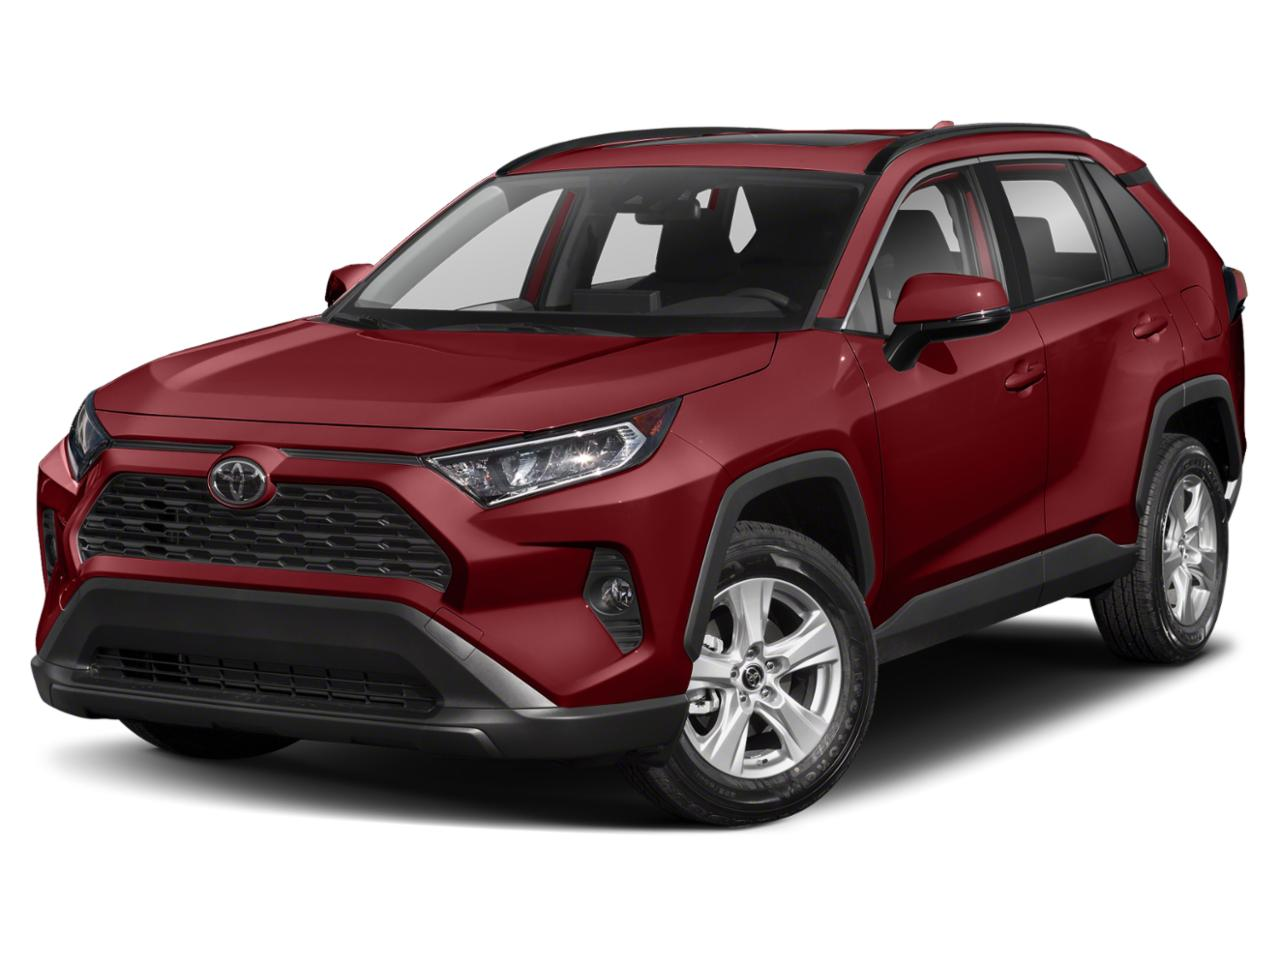 2020 Toyota RAV4 Vehicle Photo in BOWIE, MD 20716-3617